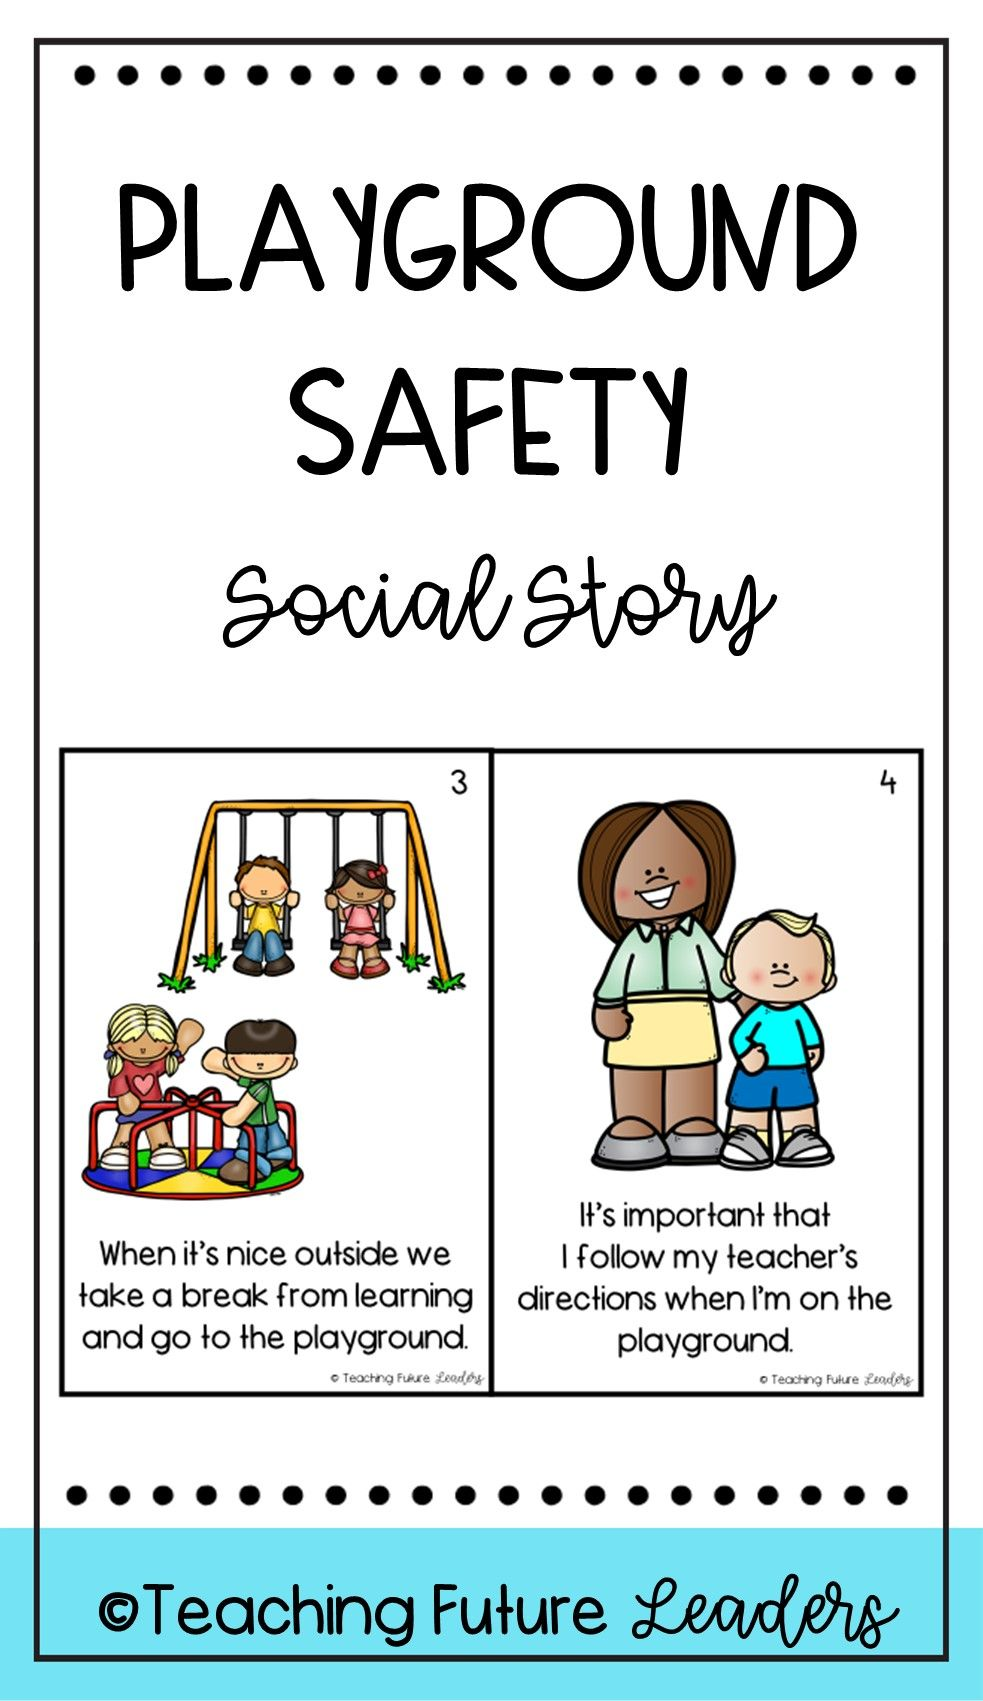 Playground Safety Social Story Playground Safety Social Stories Story Activities [ 1701 x 983 Pixel ]